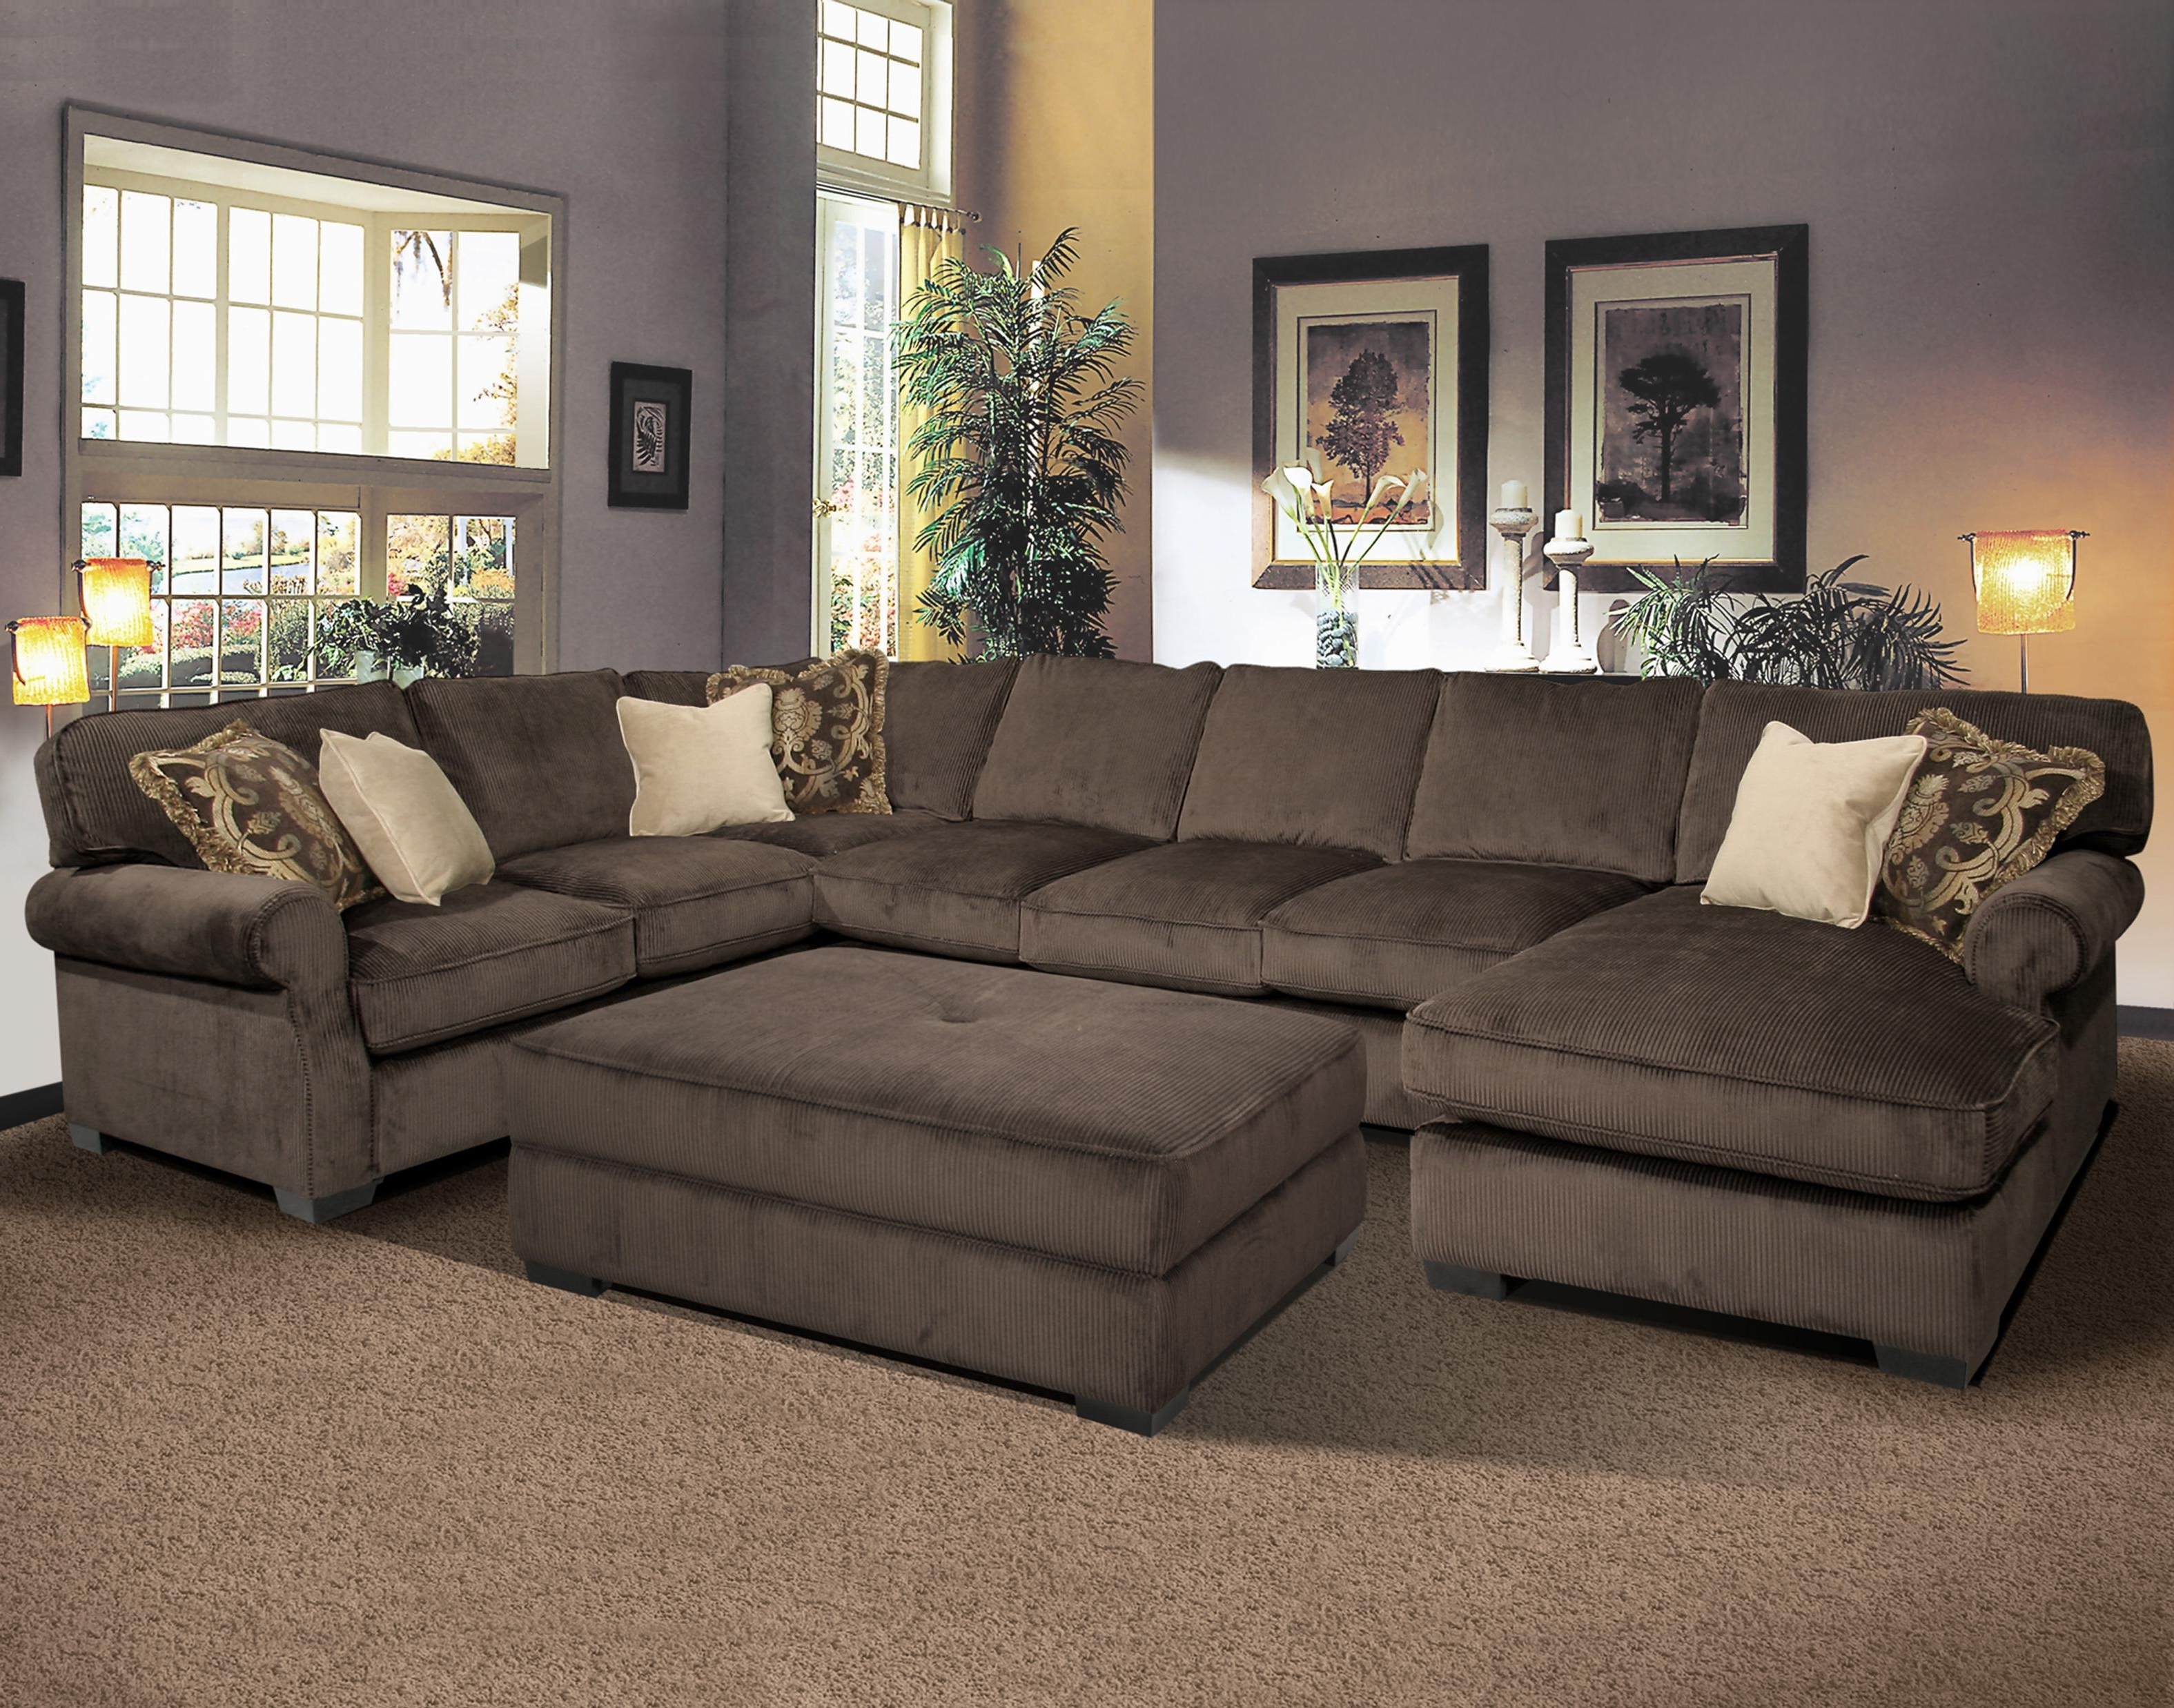 Free Quality Sectional Sofas #2021 With Regard To Well Known Quality Sectional Sofas (View 3 of 15)